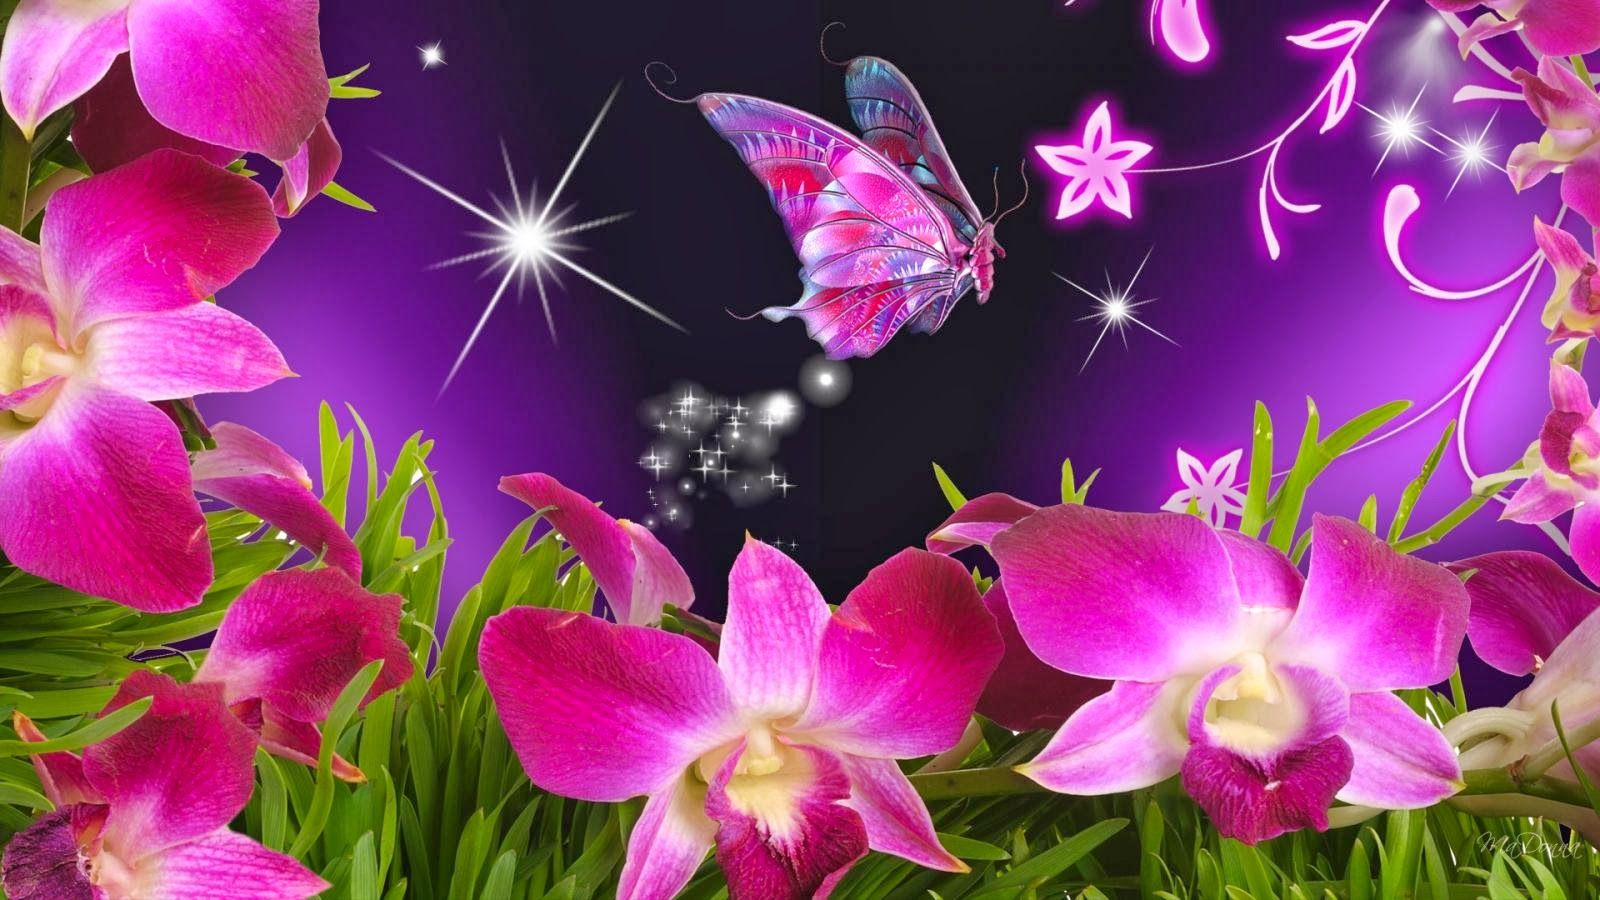 wallpaper flowers and butterflies | beautiful flowers and butterfli